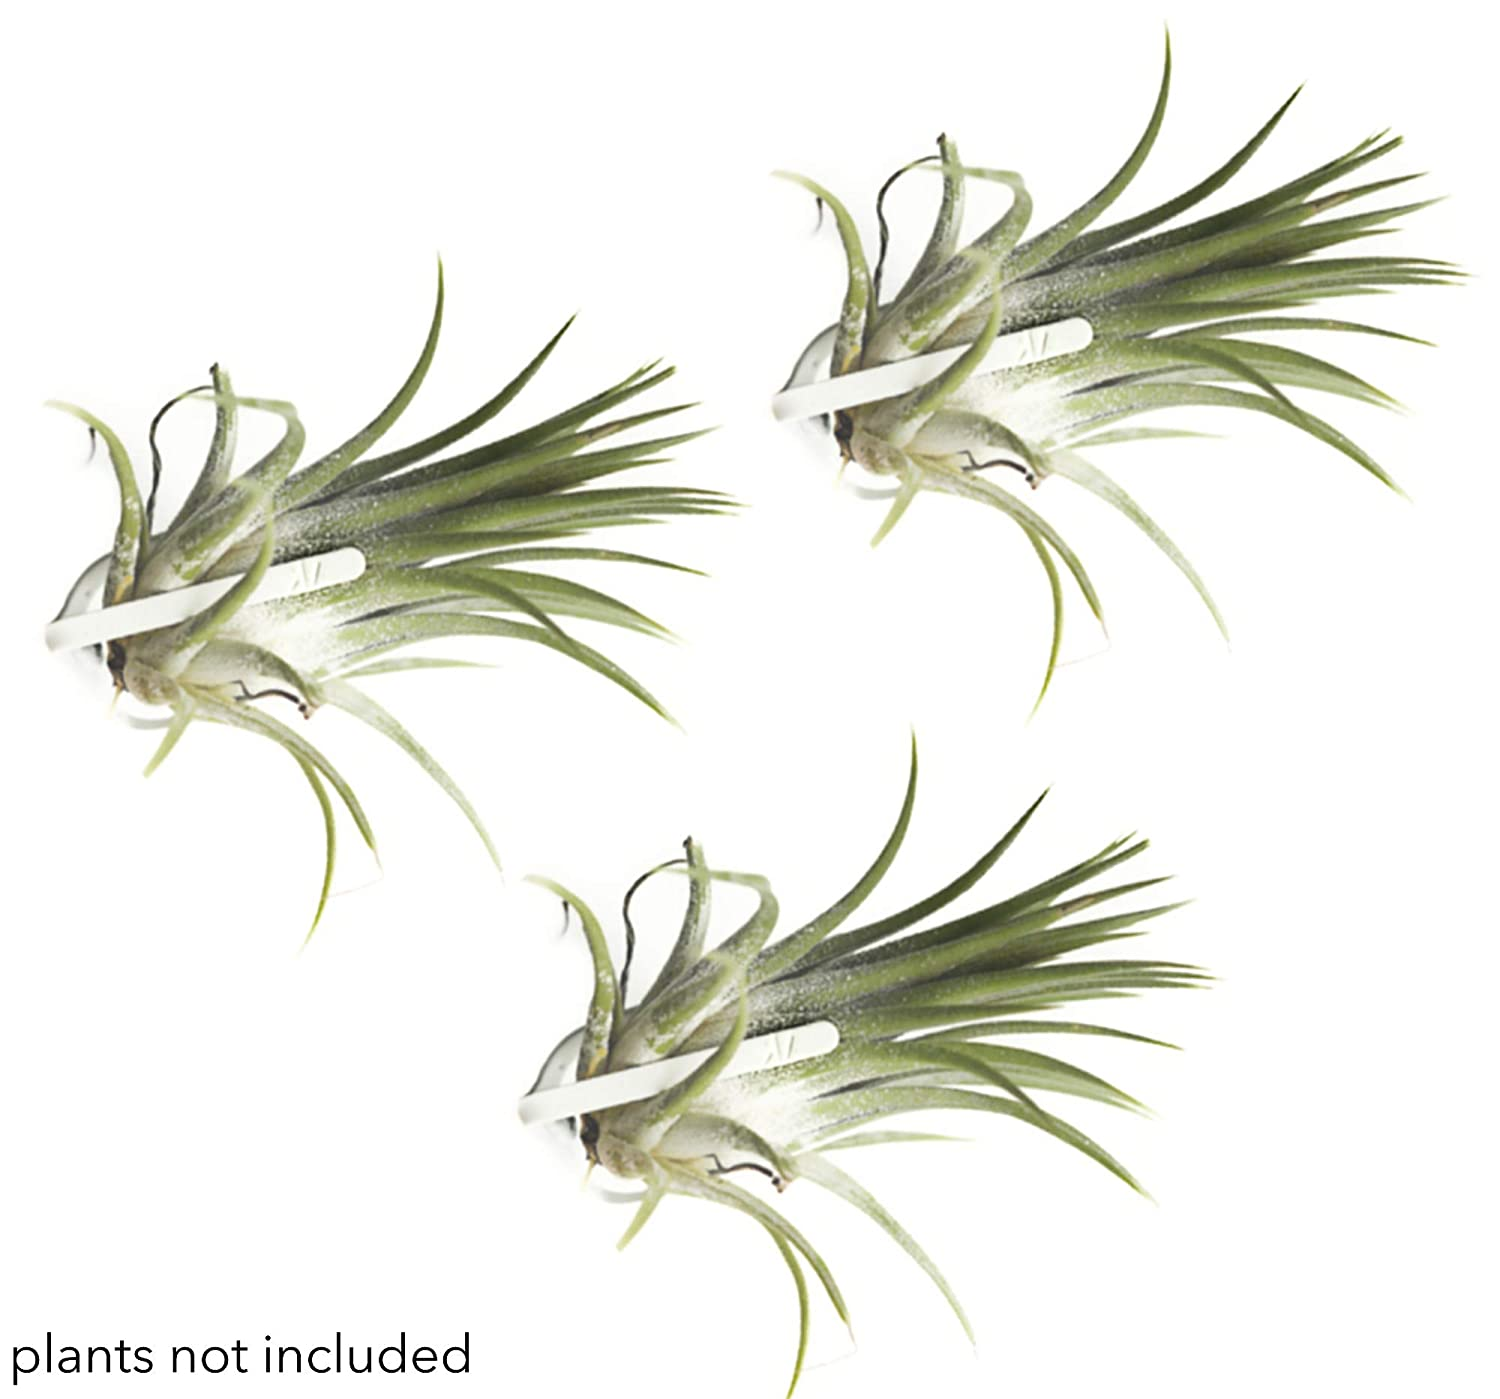 Air Plant Holder for Vertical Garden 3 Pack Air Plants House Plants make Great Wall Decorations for Living Room Wall Planters for Hanging Plant and Tillandsia Air Plants Living Wall Terrarium (White)